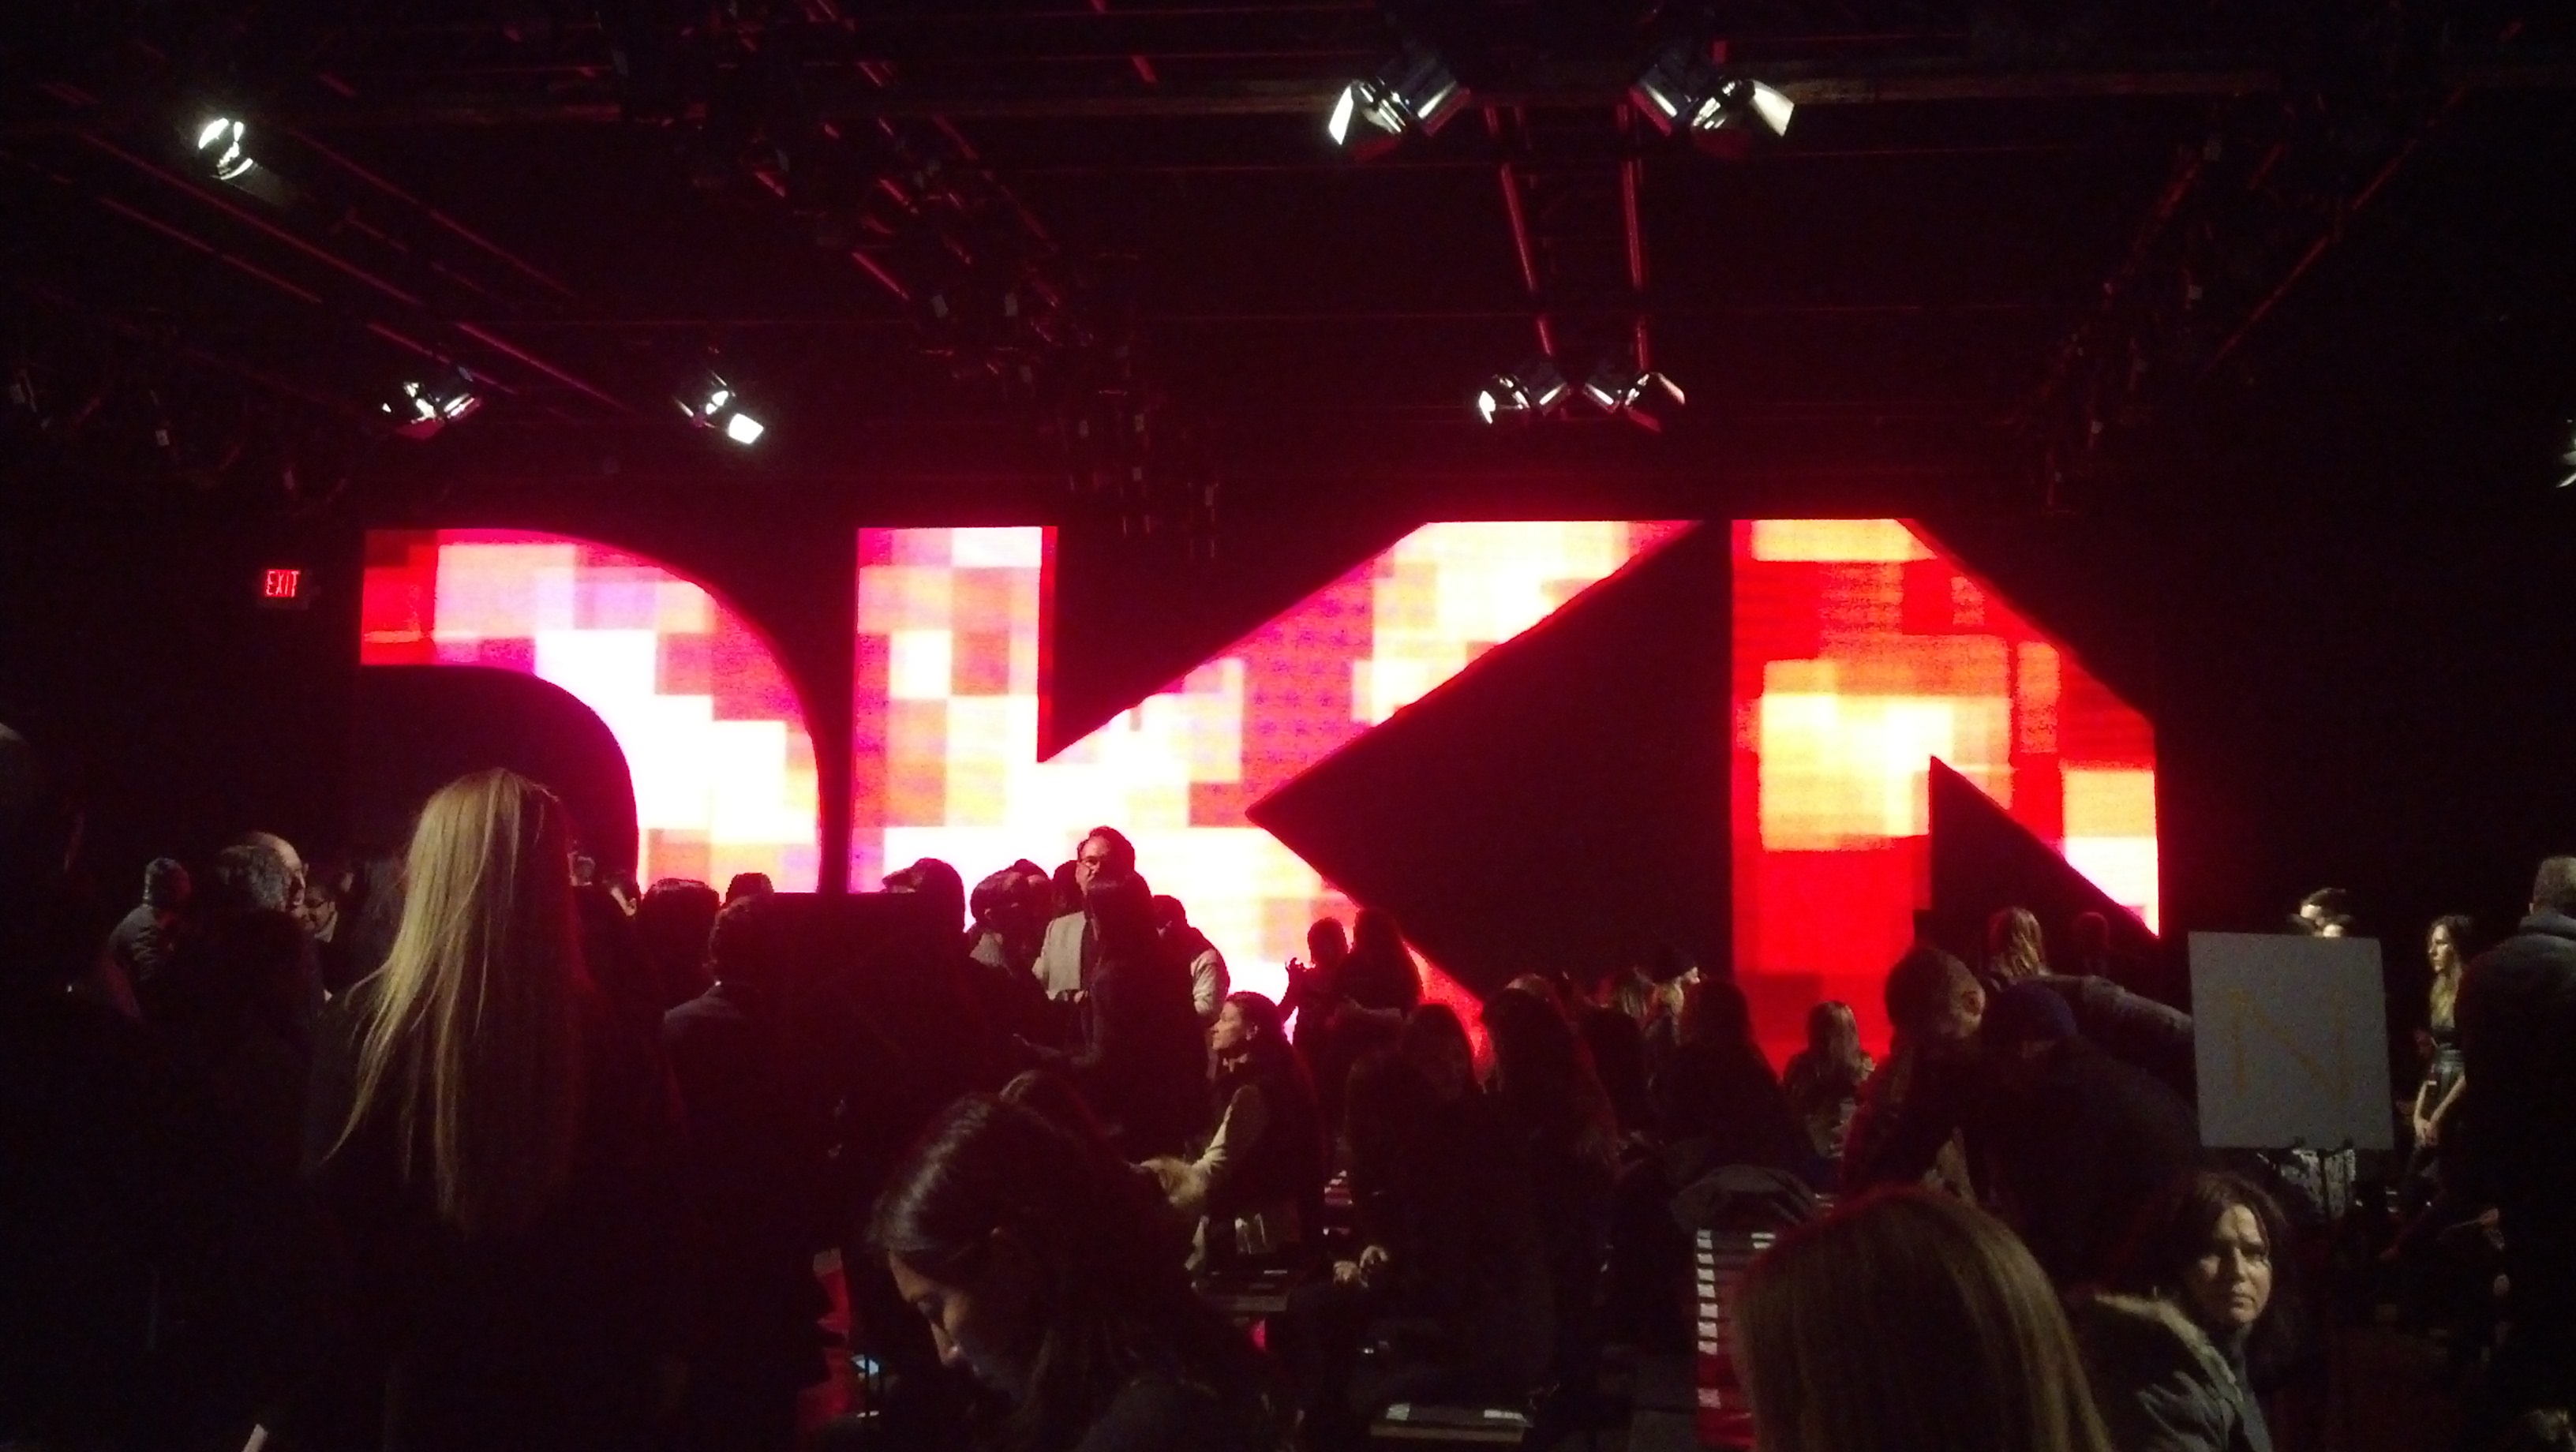 10mm LED Video Screen DKNY 2014